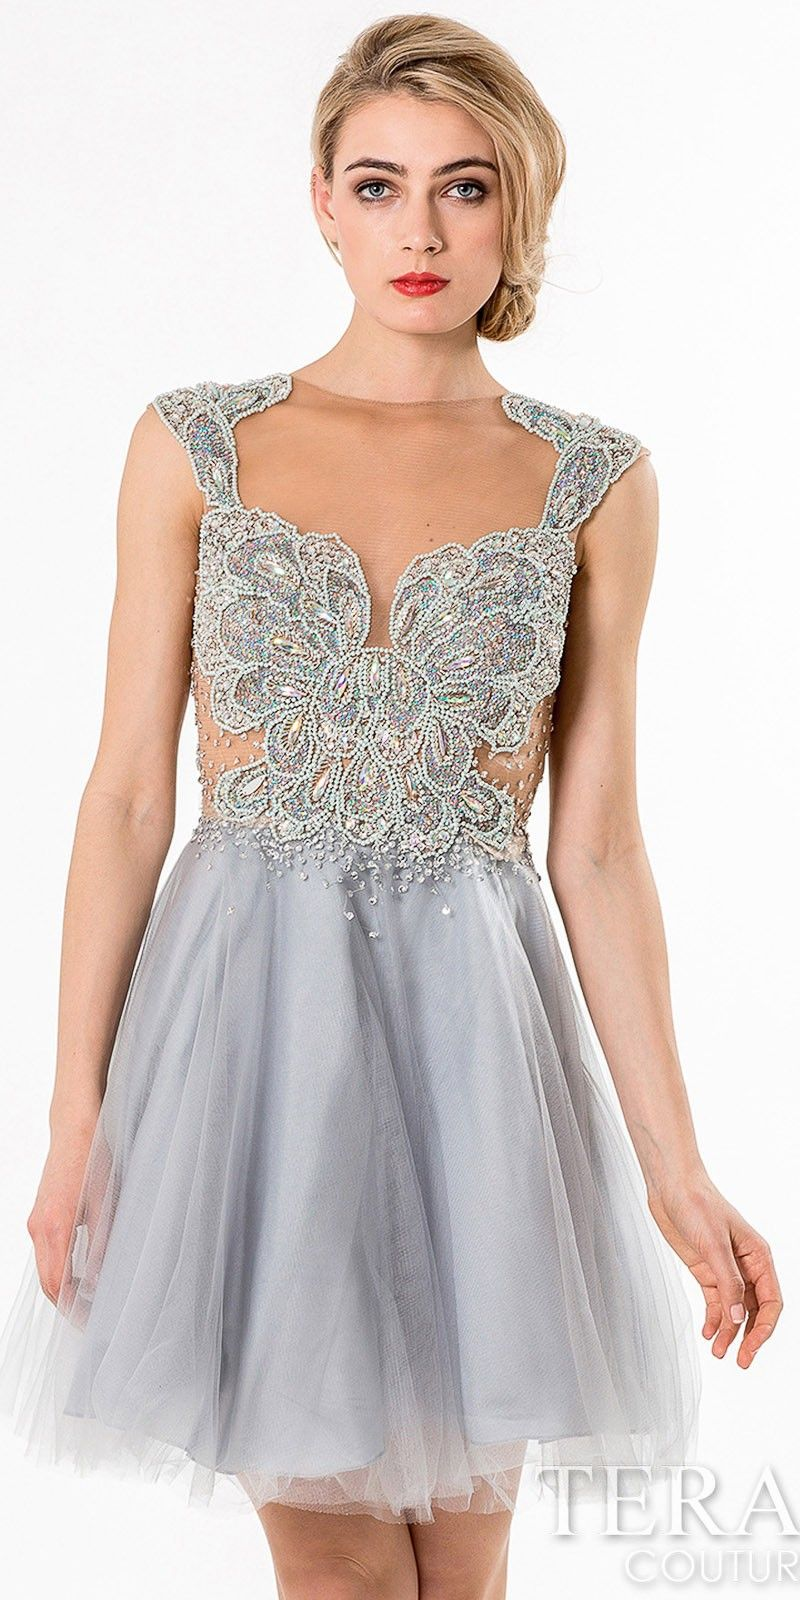 Ariel Two Piece Homecoming Dress by Terani Couture | Short Dresses ...